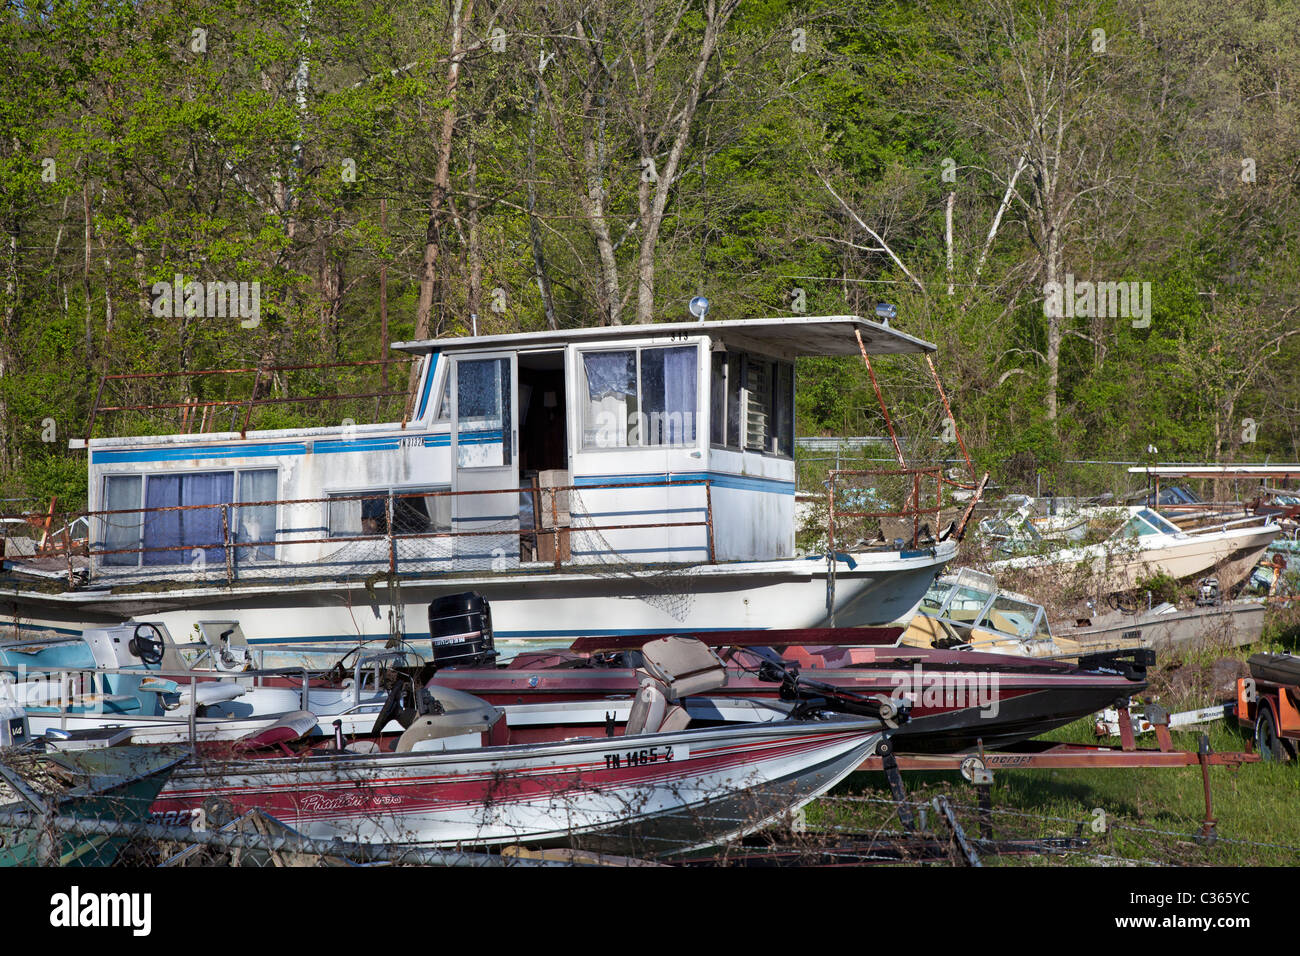 Kingston, Tennessee - Boats piled up in a junkyard. - Stock Image